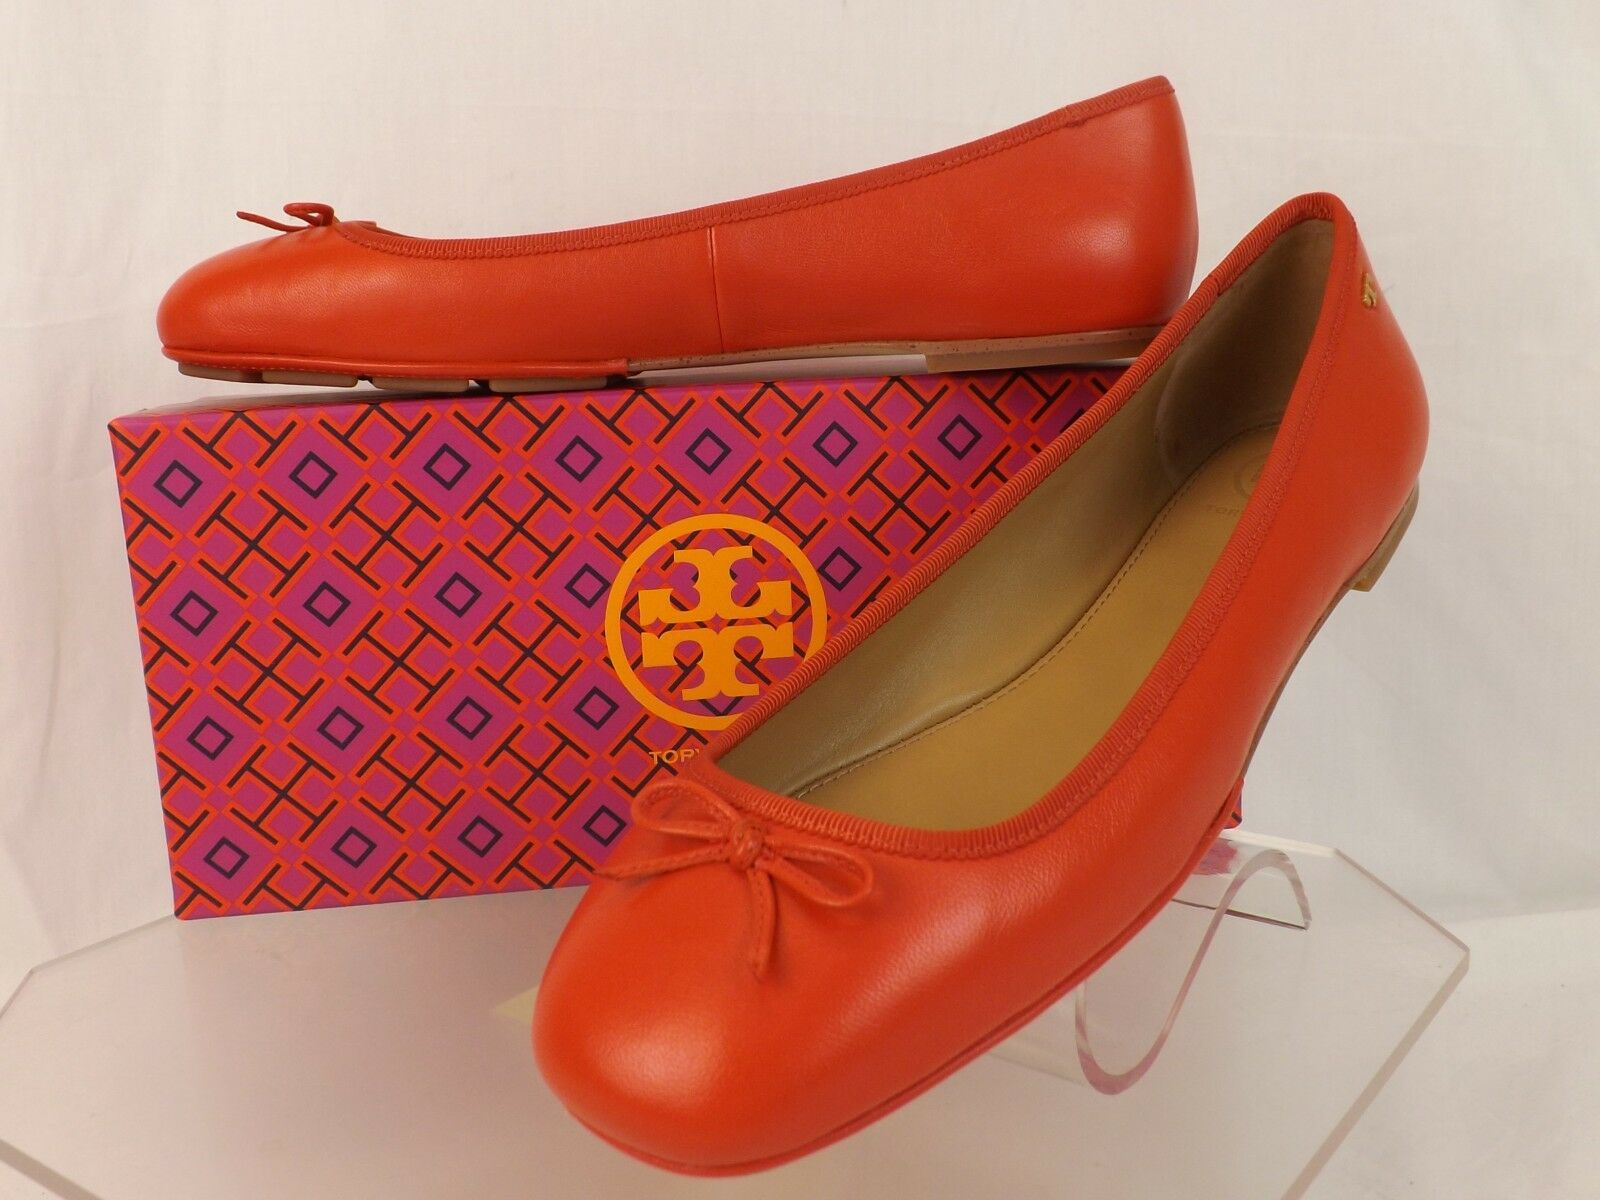 TORY BURCH POPPY ORANGE ORANGE POPPY LEATHER LAILA 2 BOW DRIVER GOLD REVA BALLET FLATS 10.5 138fa6